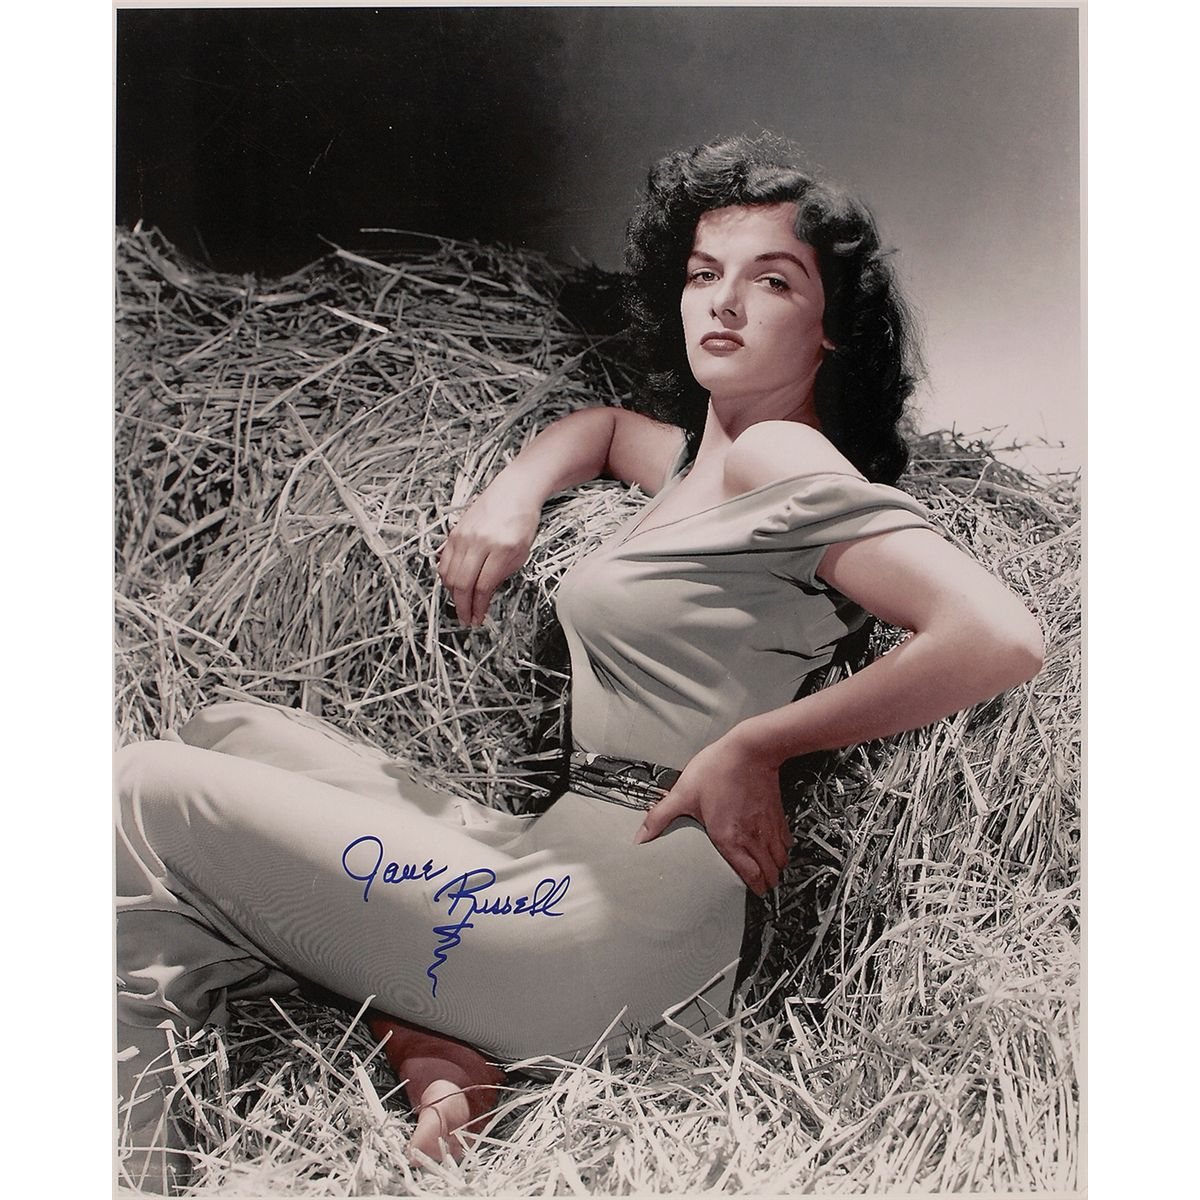 jane russell kibbejane russell marilyn monroe, jane russell kibbe, jane russell the outlaw poster, jane russell last photo, jane russell 2011, jane russell autobiography, jane russell interview about marilyn monroe, jane russell wikipedia, jane russell, jane russell photos, jane russell quotes, jane russell imdb, jane russell wiki, jane russell old, jane russell adoption ireland, jane russell gentlemen prefer blondes, jane russell underwater, jane russell youtube, jane russell marilyn monroe movie, jane russell adoption